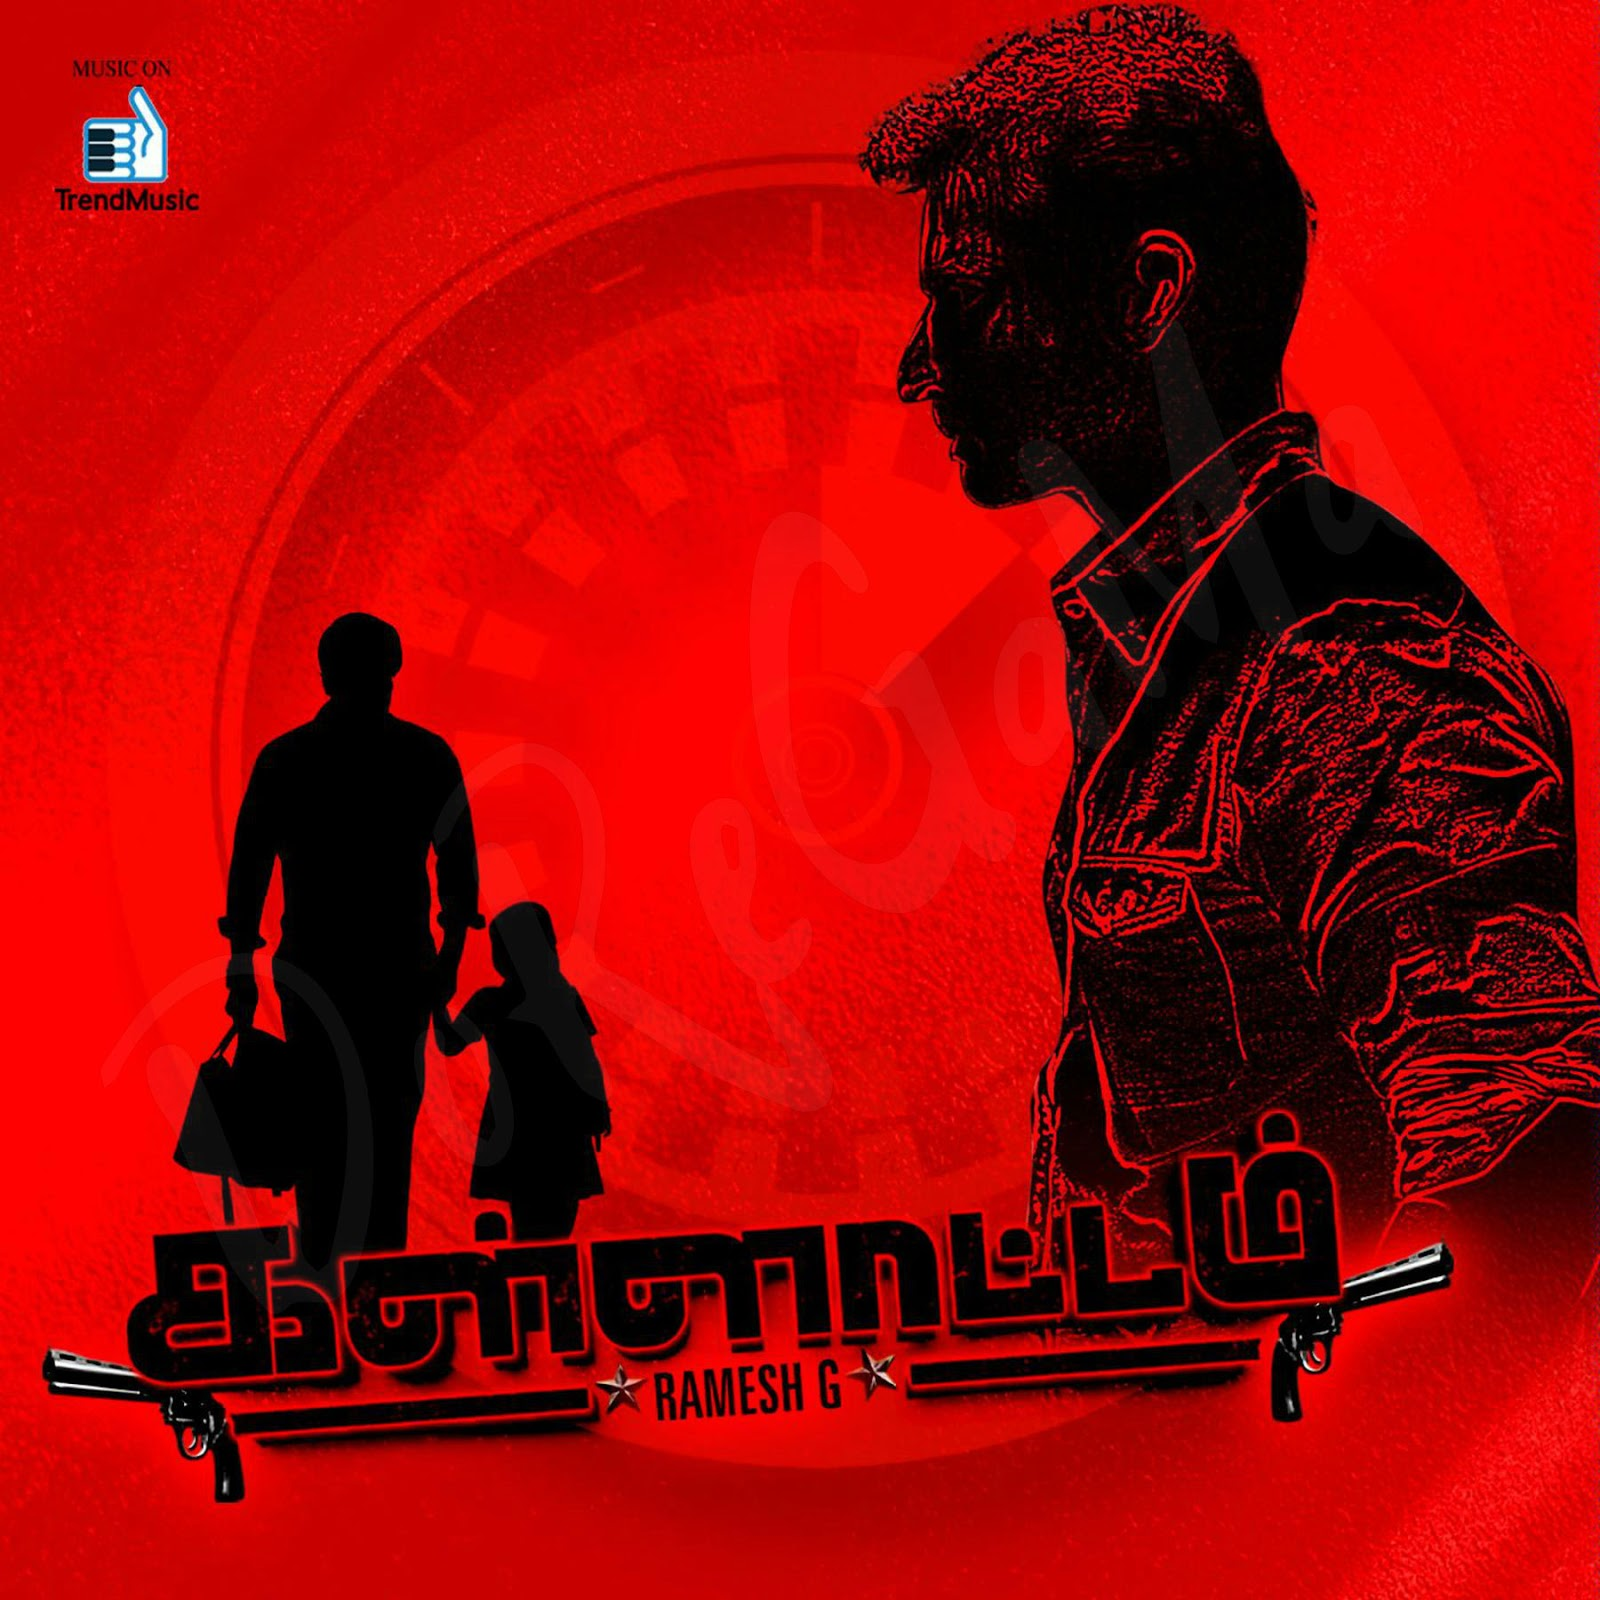 Kallattam-Tamil-2016-Original-CD-Front-Cover-Poster-Wallpaper-HD